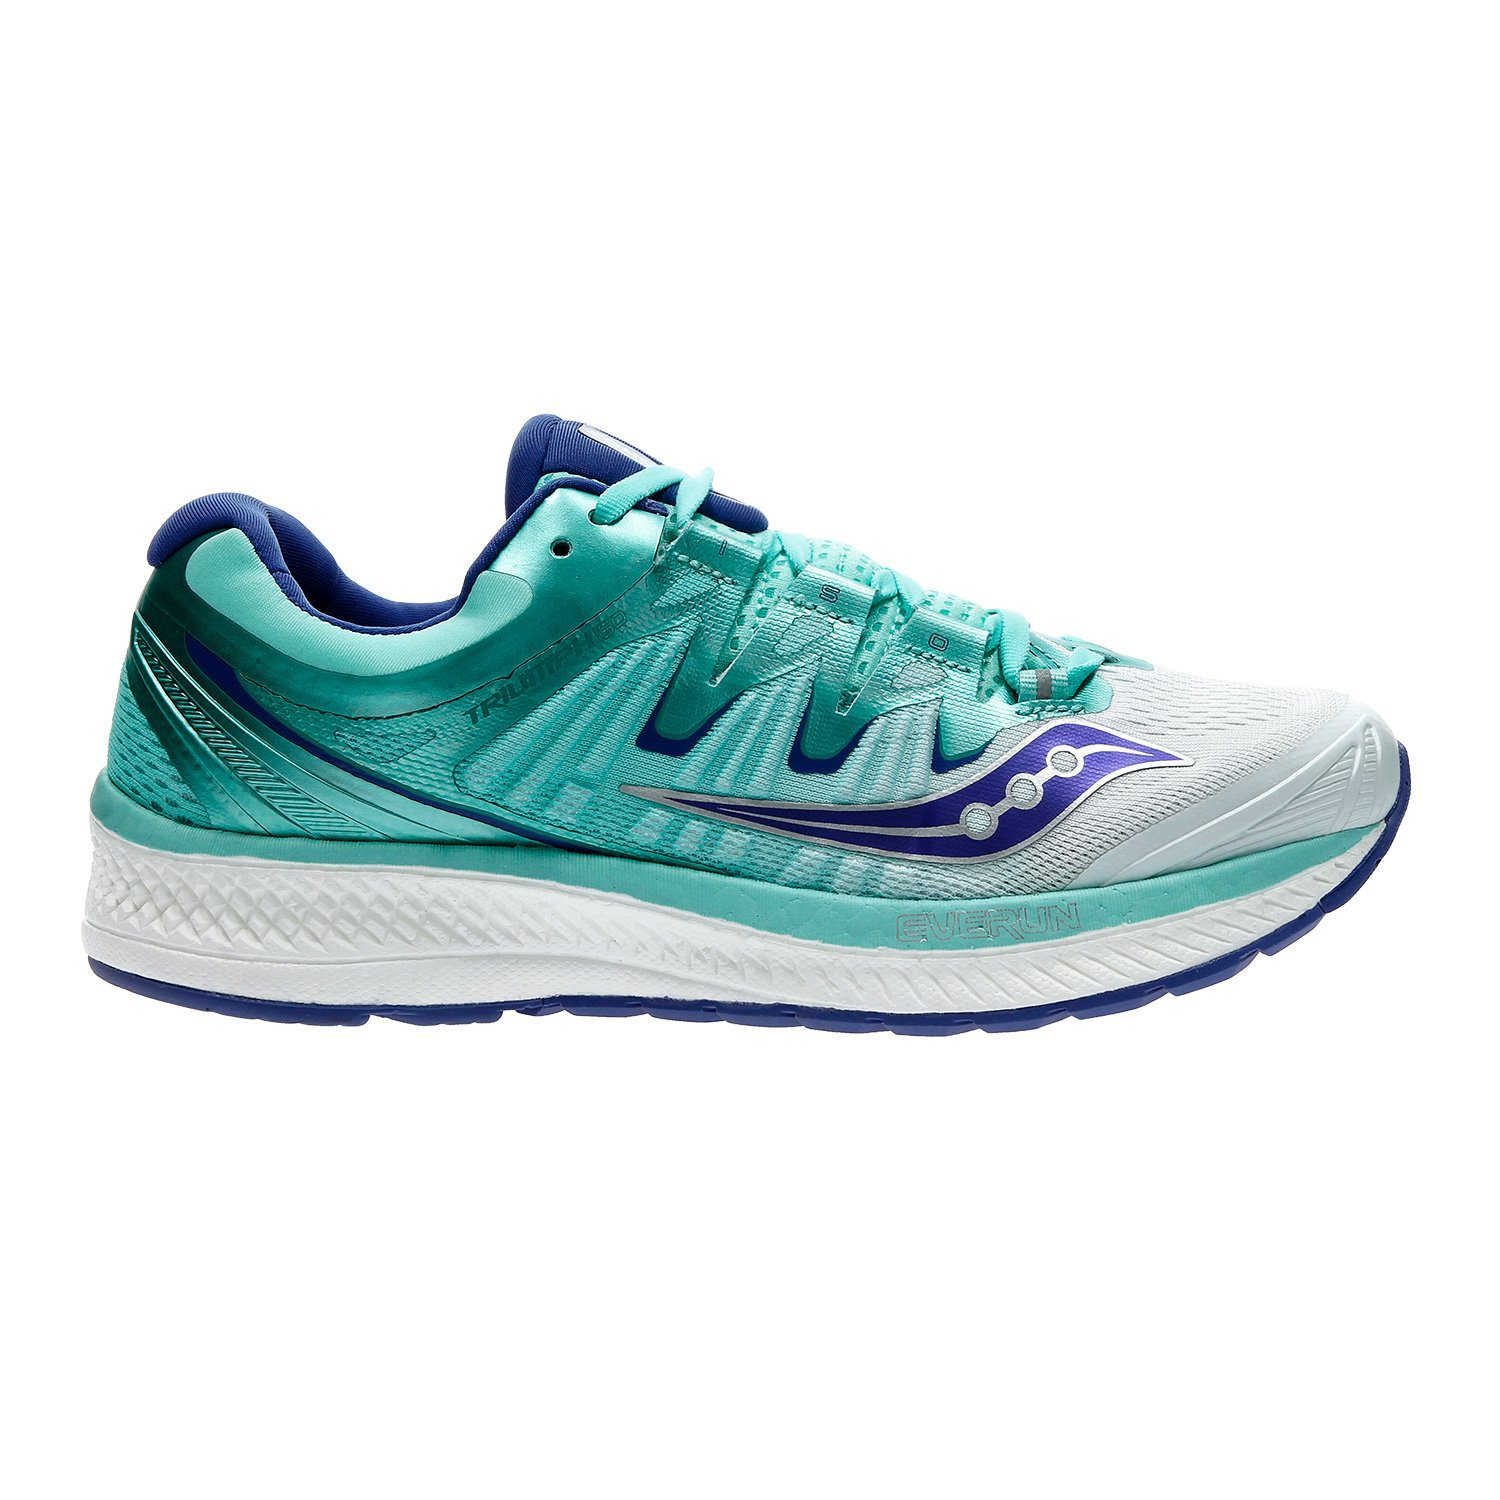 Saucony Triumph ISO 4 dame